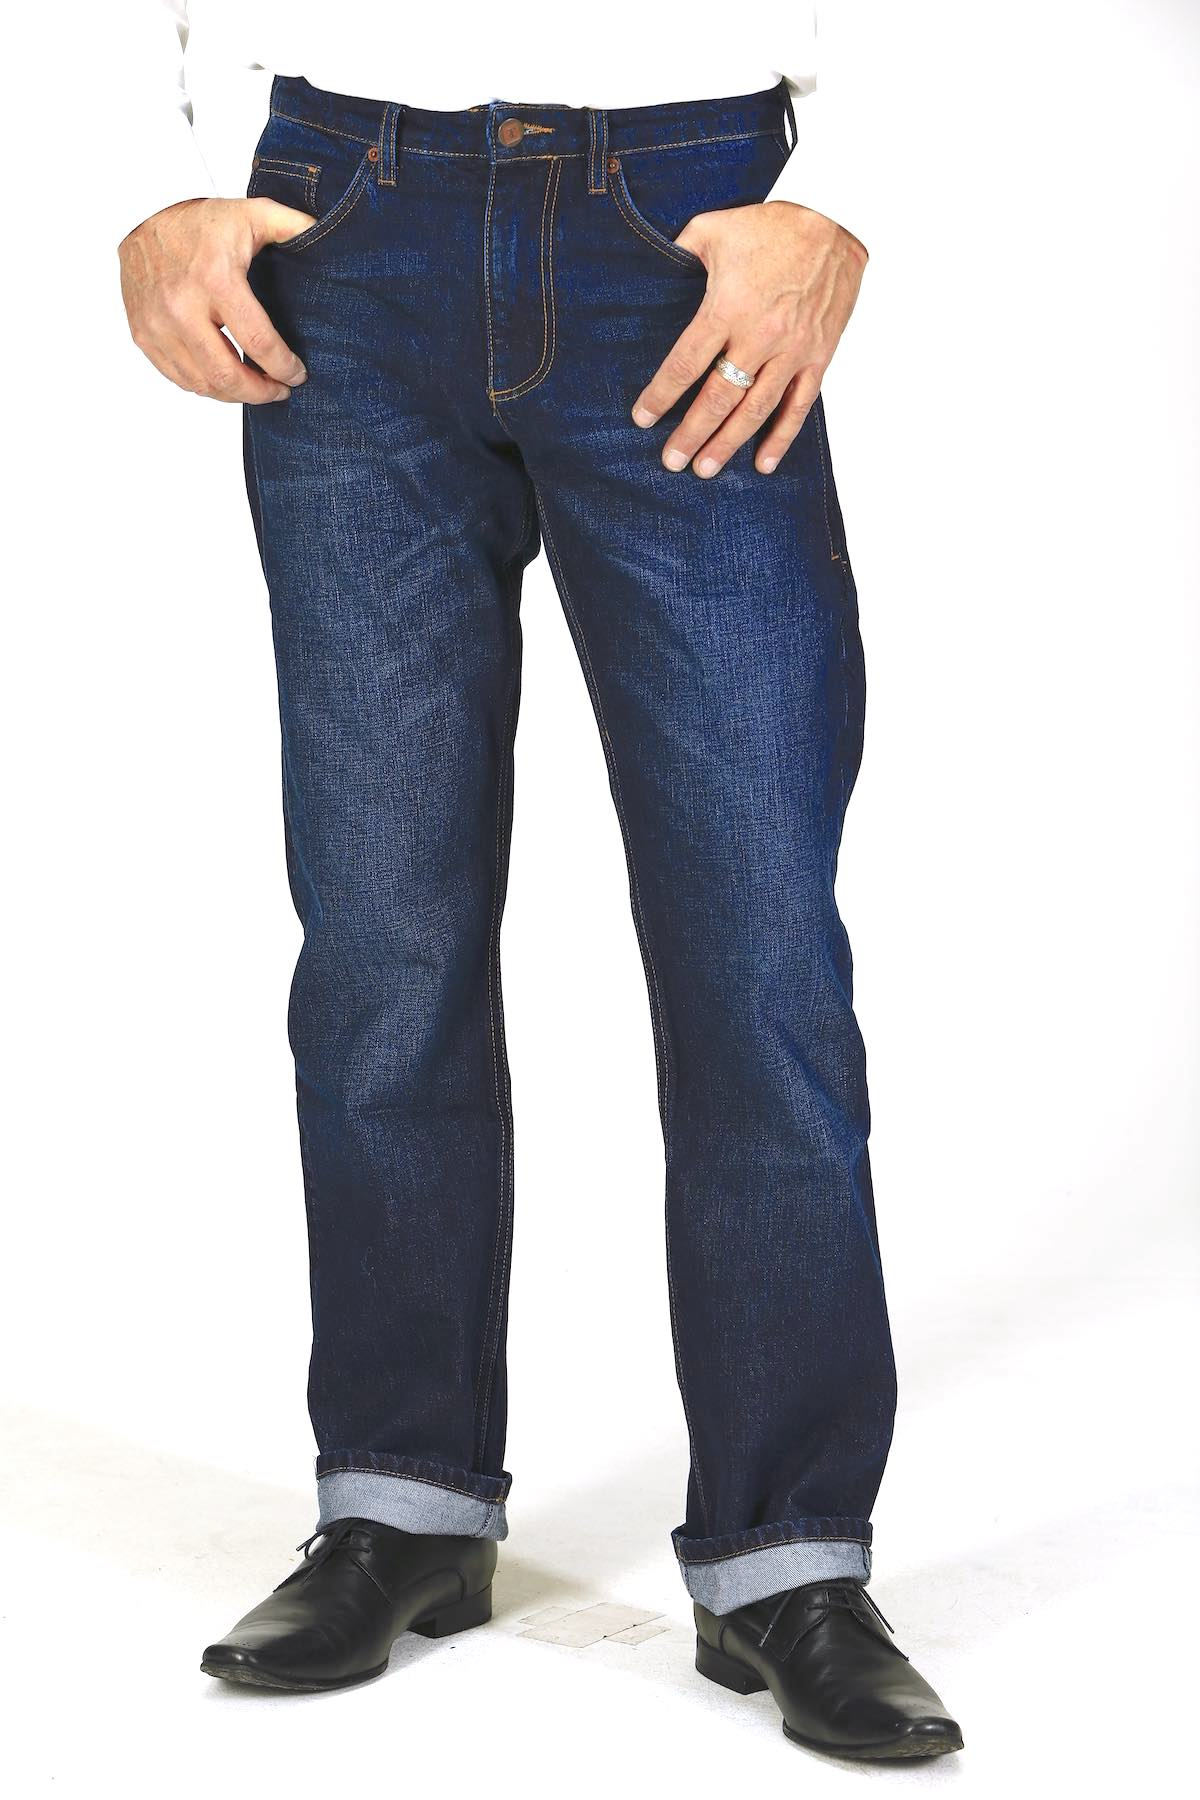 Straight Fit - Dark Indigo Herren-Jeans